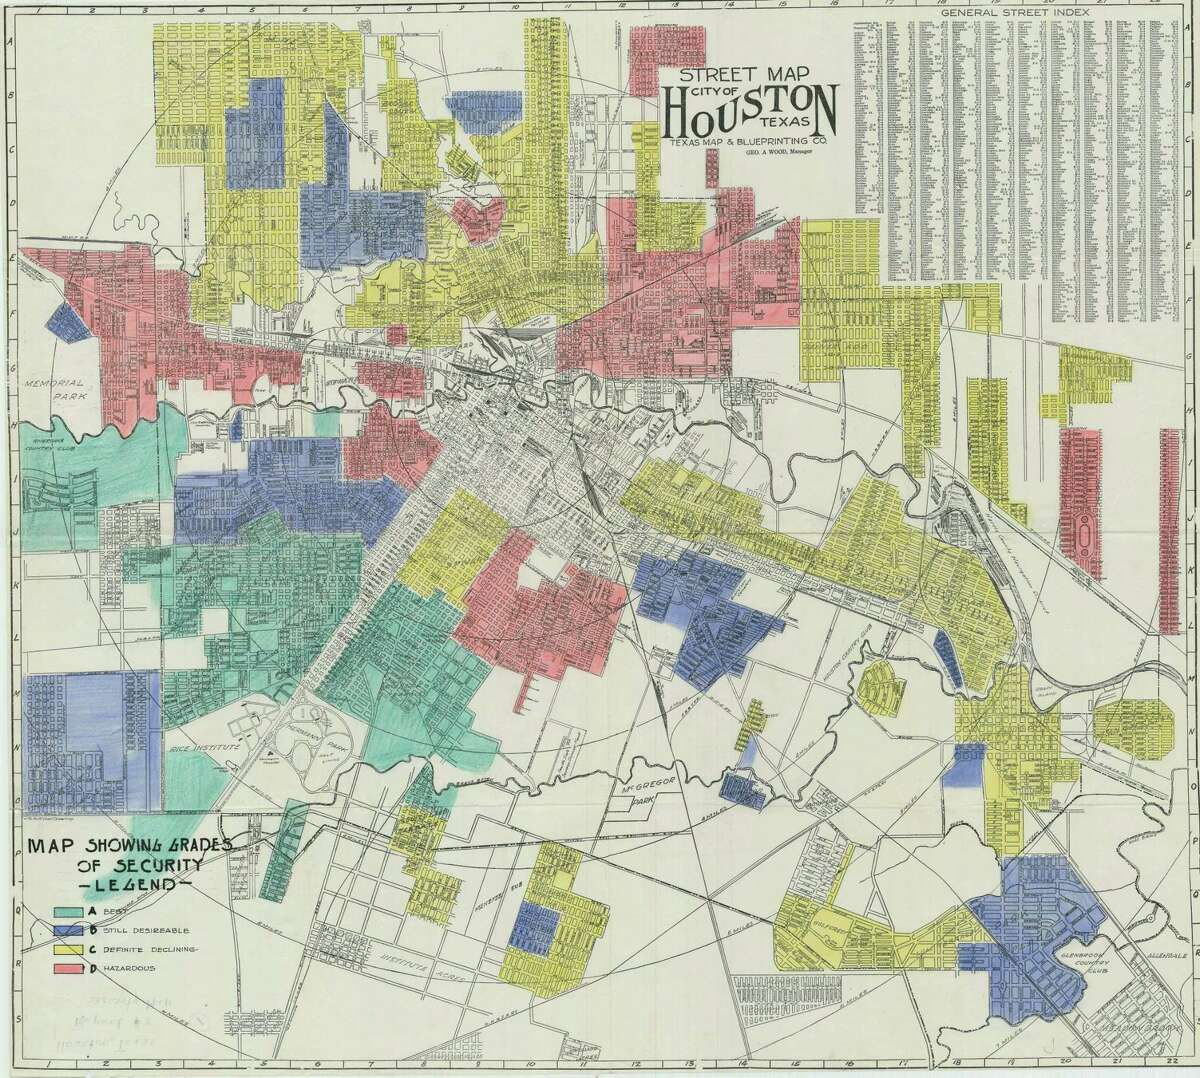 The Home Owners' Loan Corporation (HOLC) map of Houston was created by a New Deal program of the federal government in the 1930s and is commonly known as